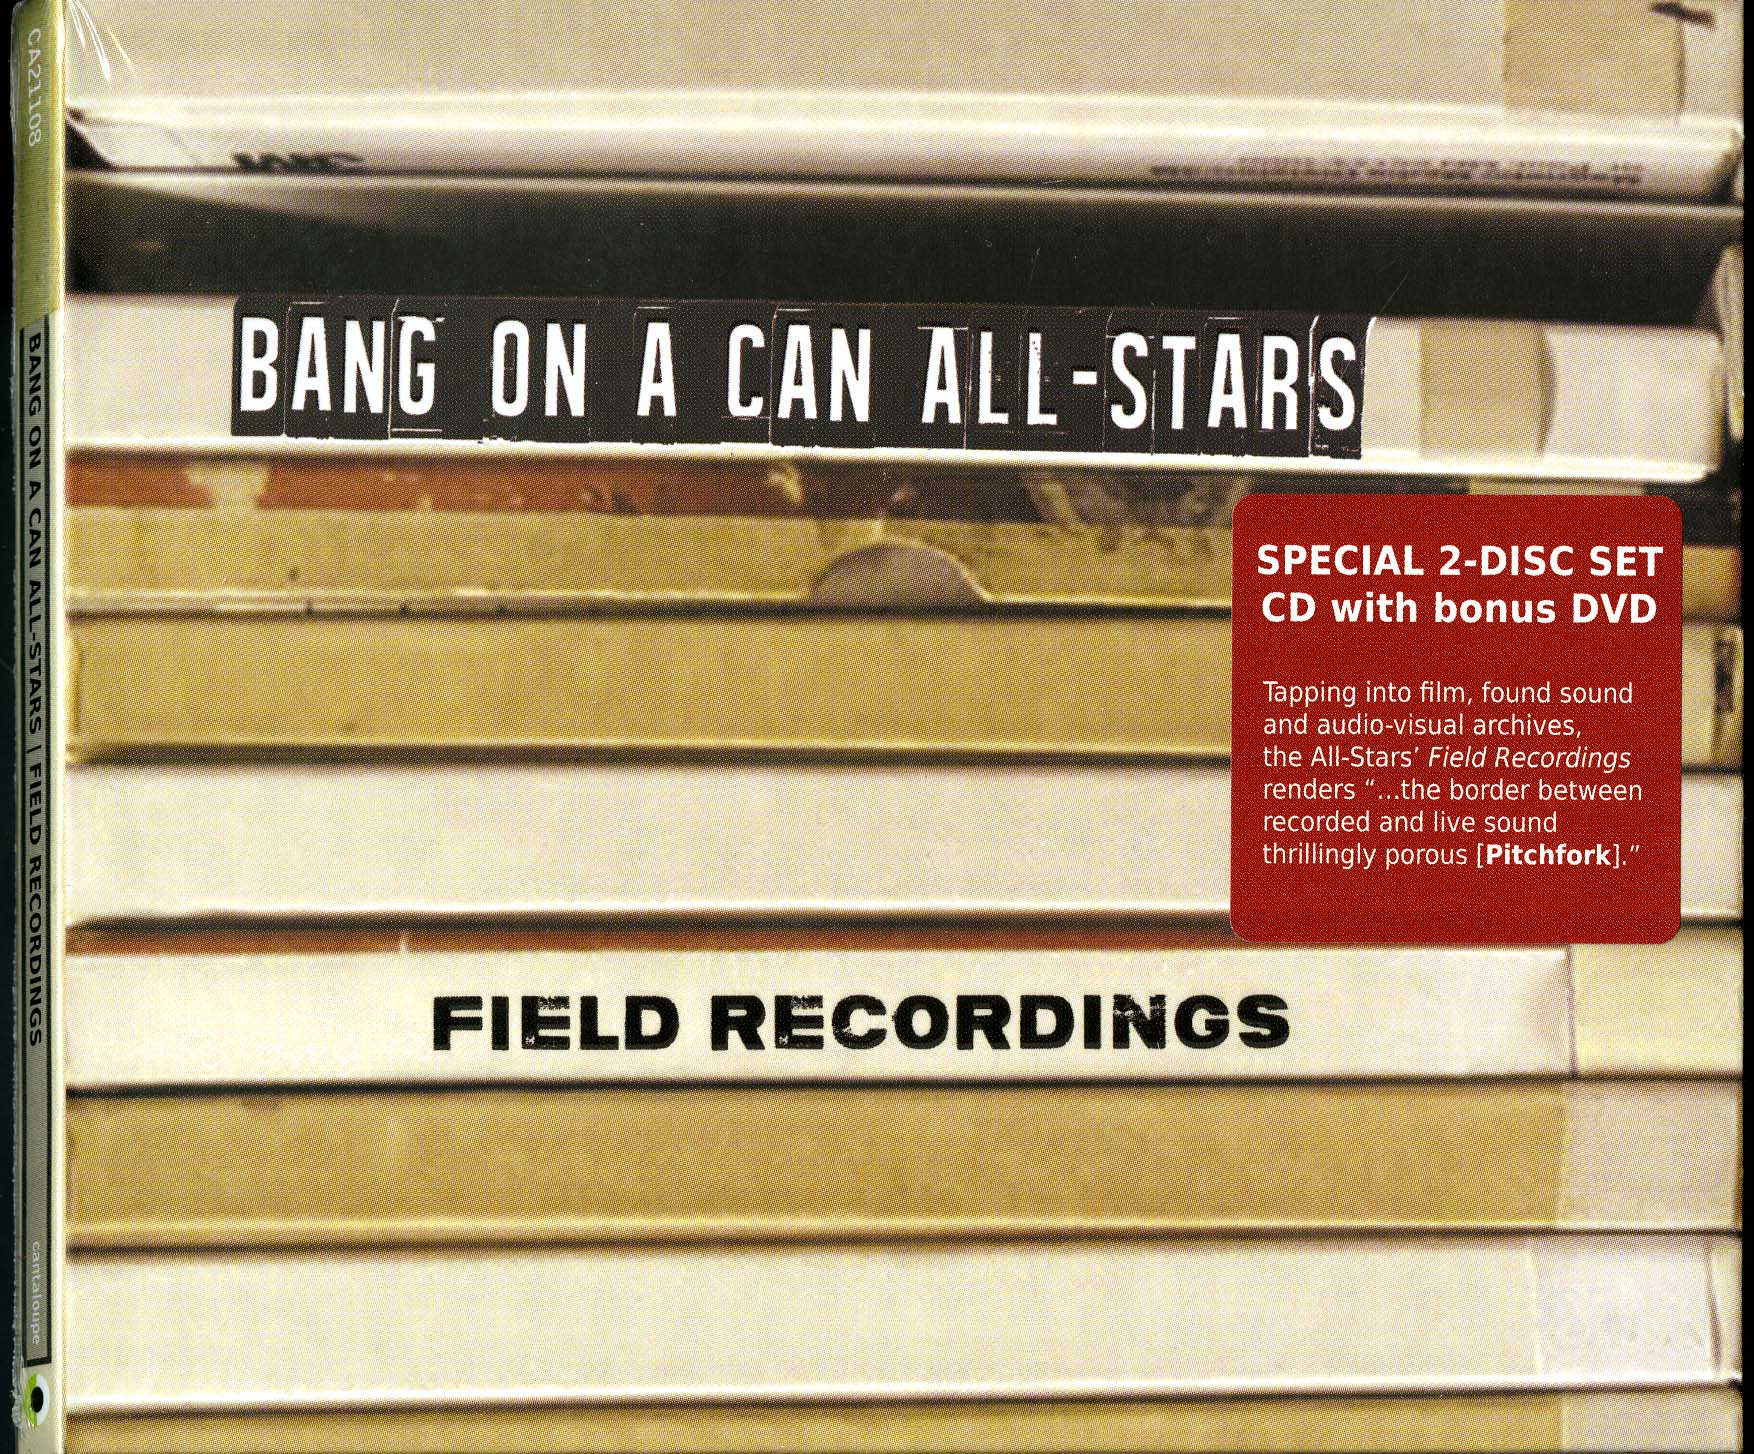 Bang on a can All-Stars